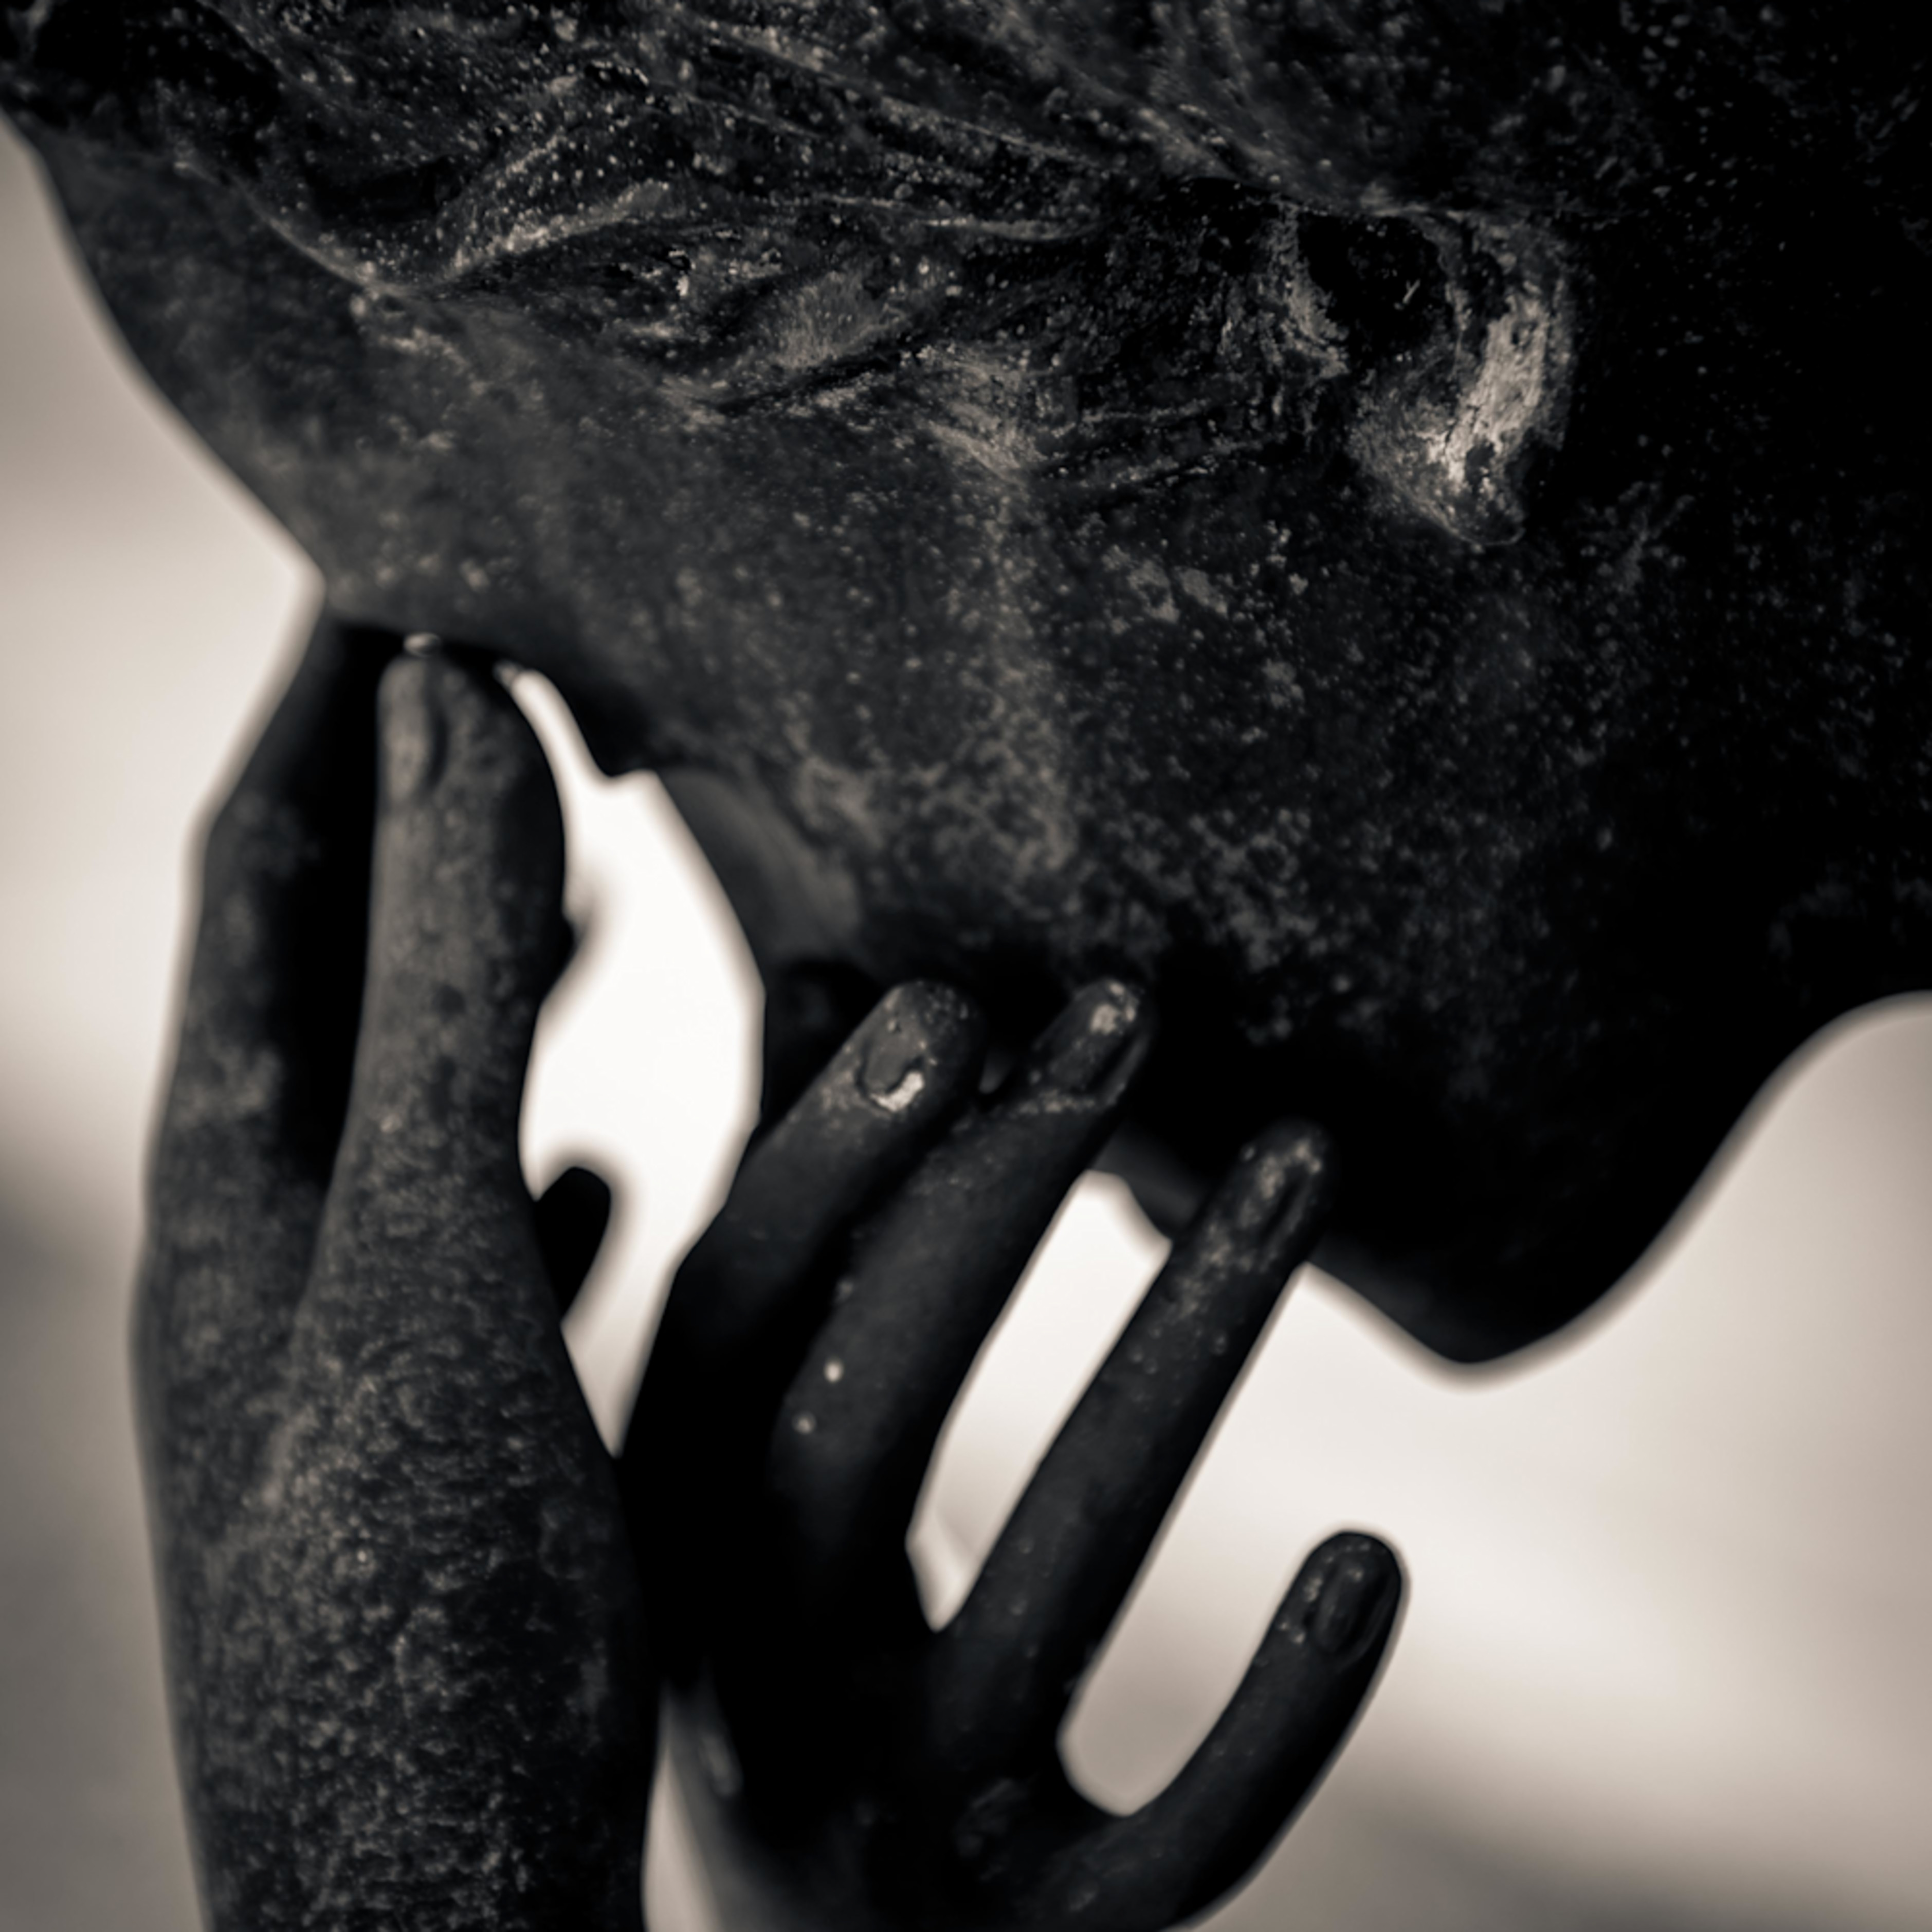 Crying statue metarie cemetery new orleans louisiana 2017 a93x4o